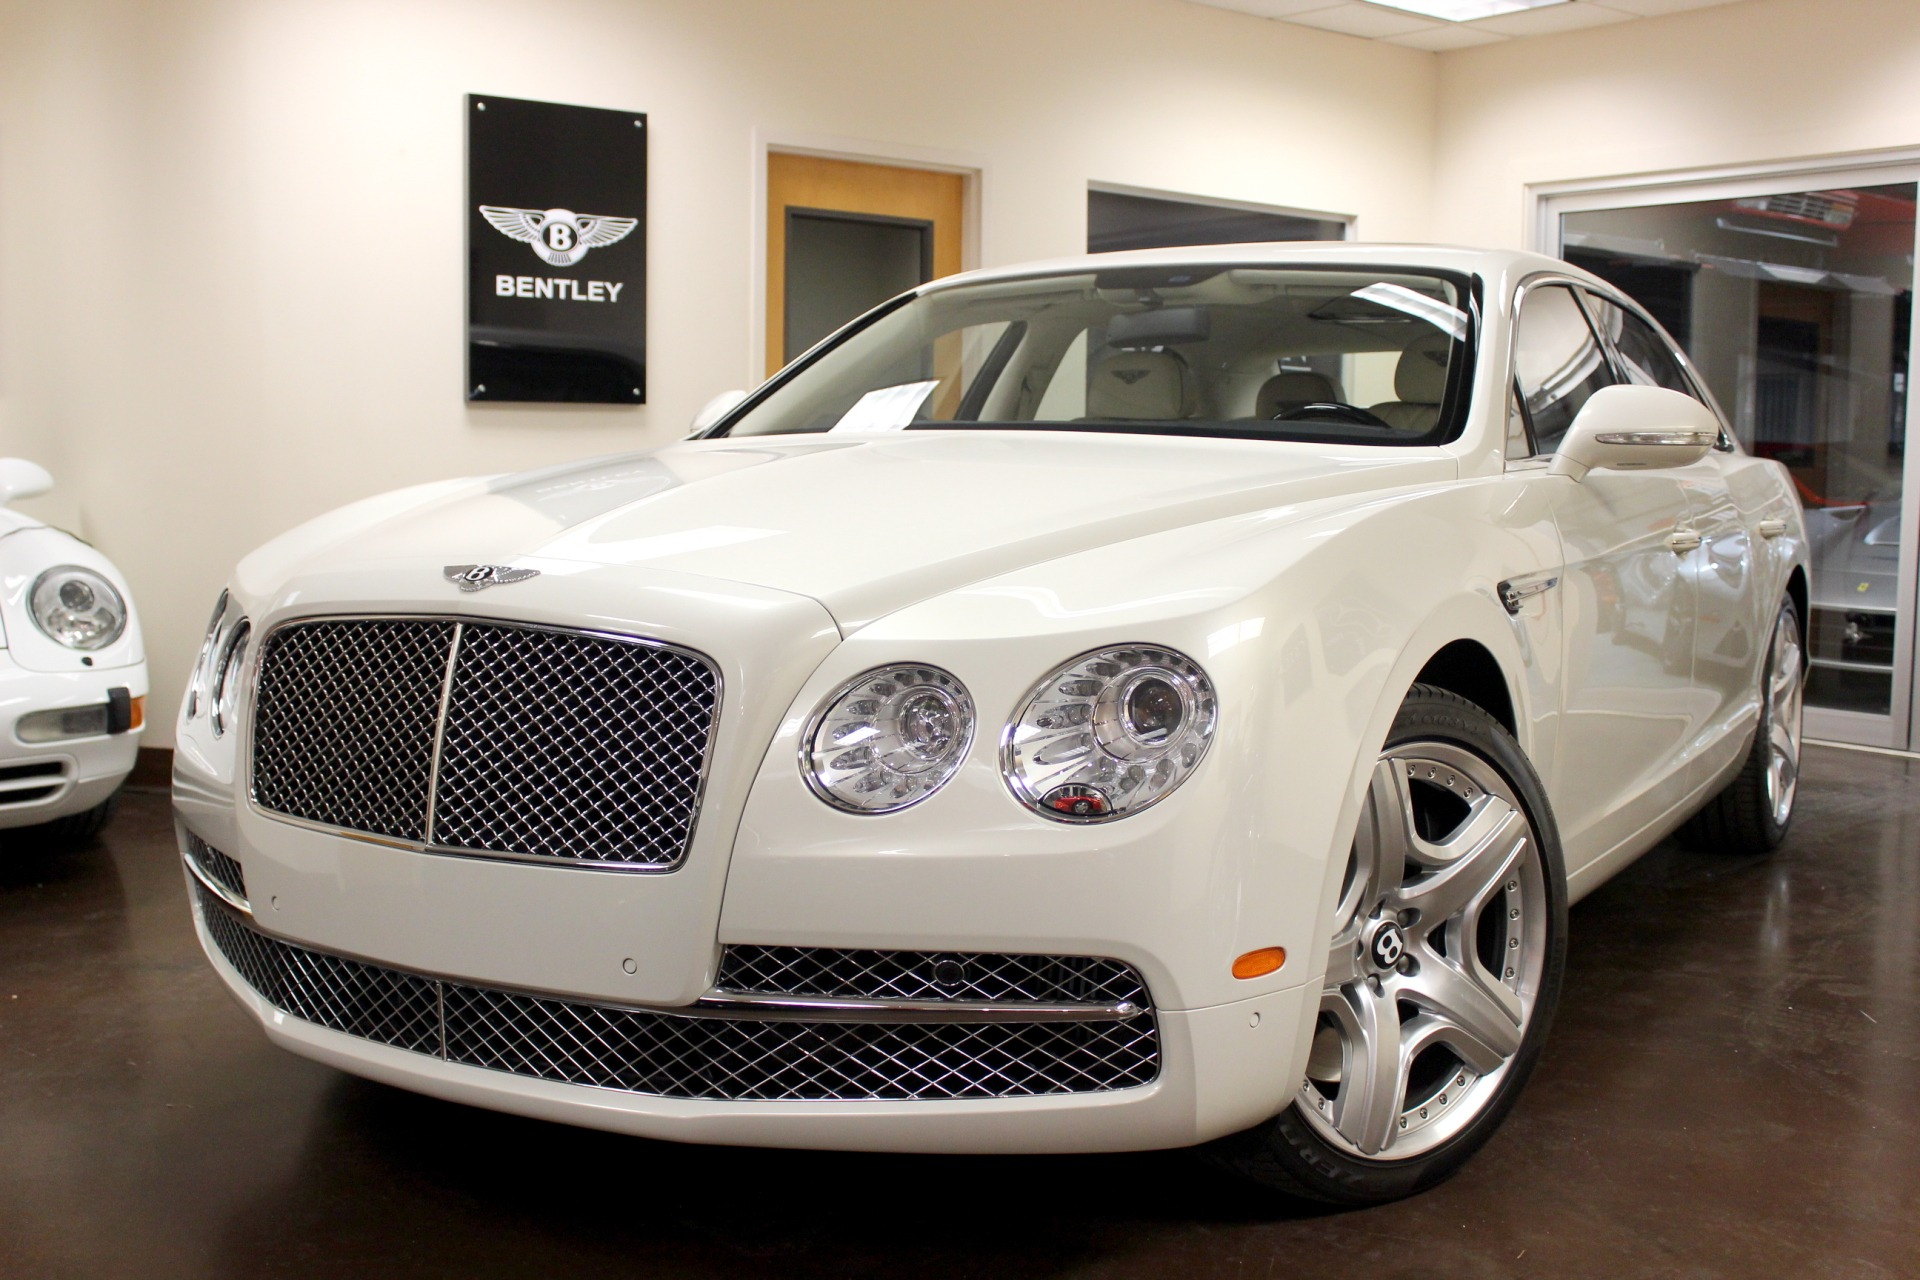 used 2015 bentley continental flying spur stock p4039c ultra luxury car from merlin auto group. Black Bedroom Furniture Sets. Home Design Ideas